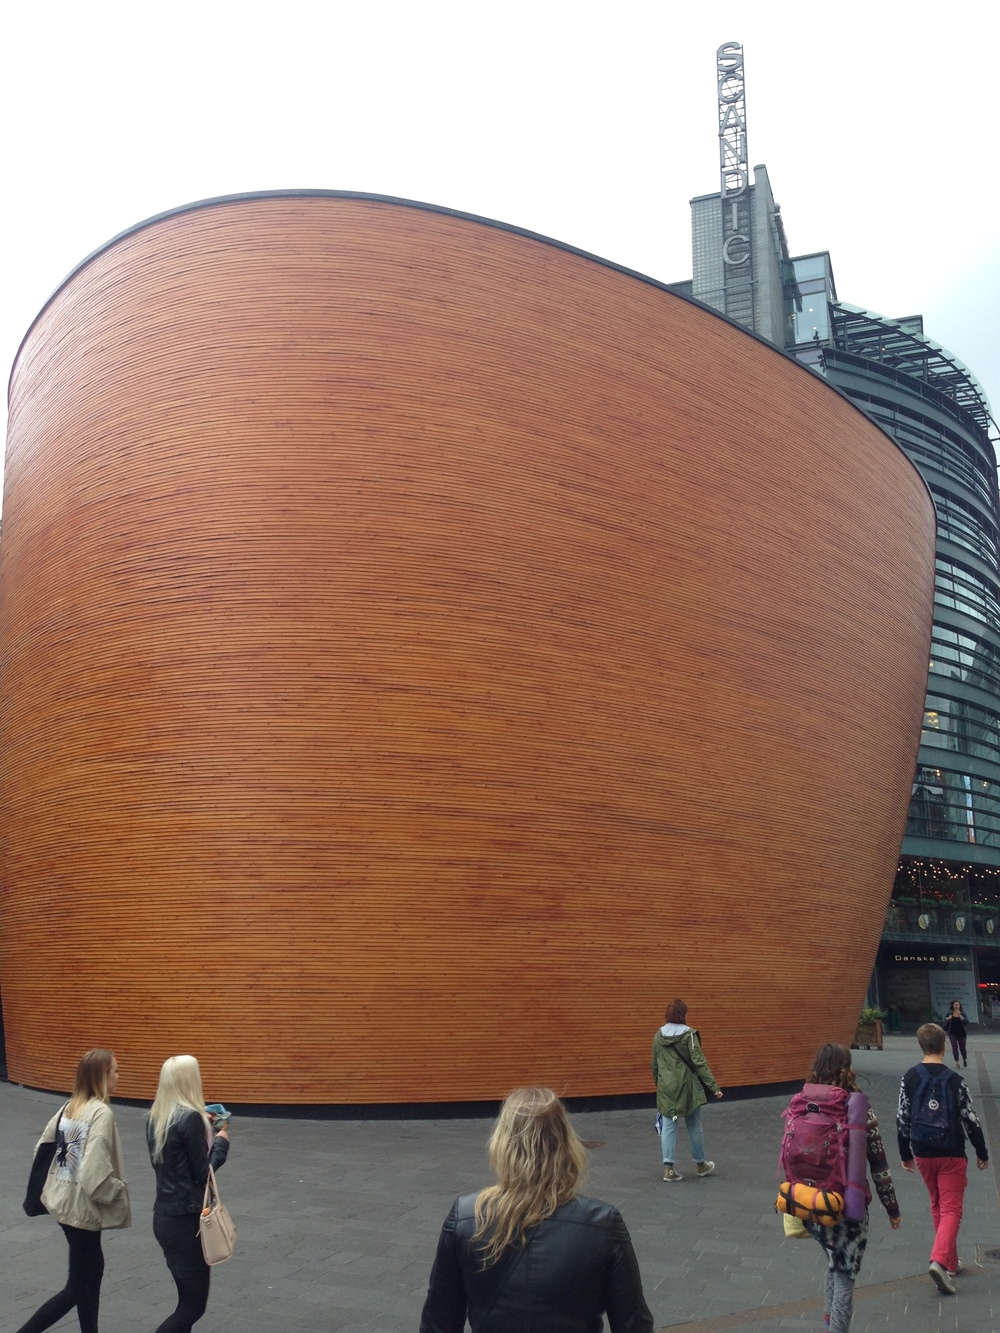 The Kamppi Chapel of Silence is one of the most intriguing buildings in the city.